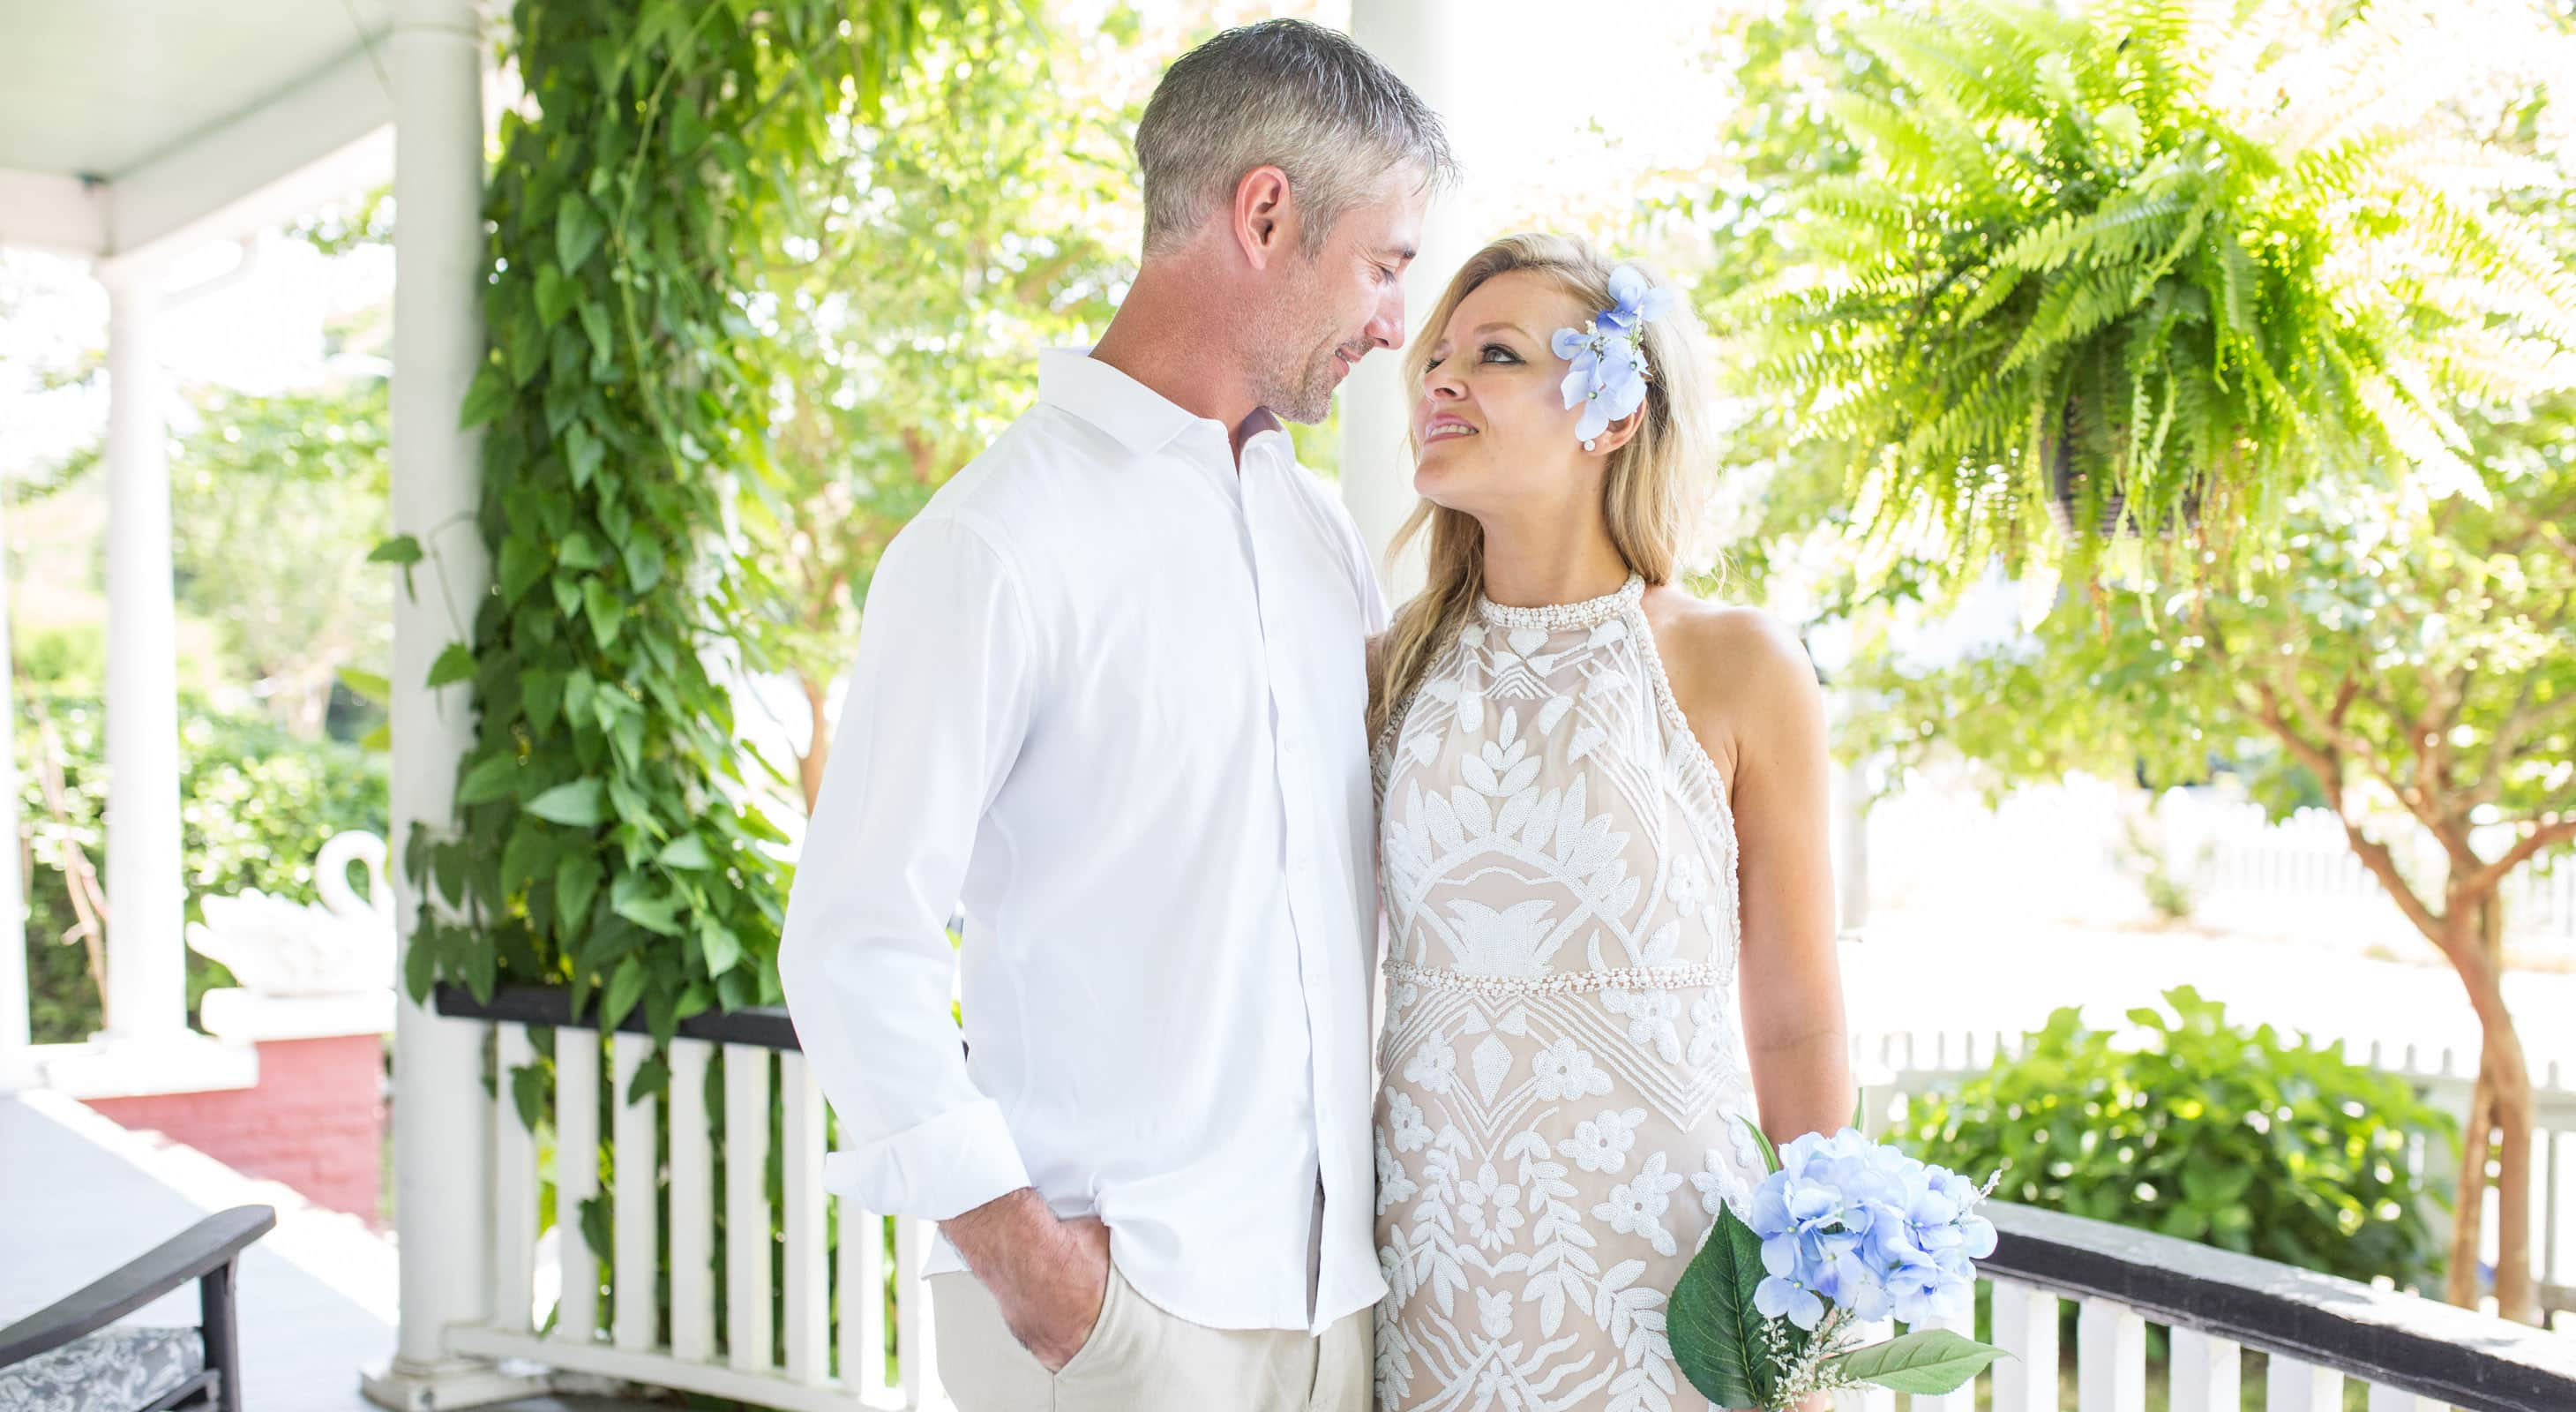 Bride and Groom on Porch at Our Outer Banks Elopement Venue